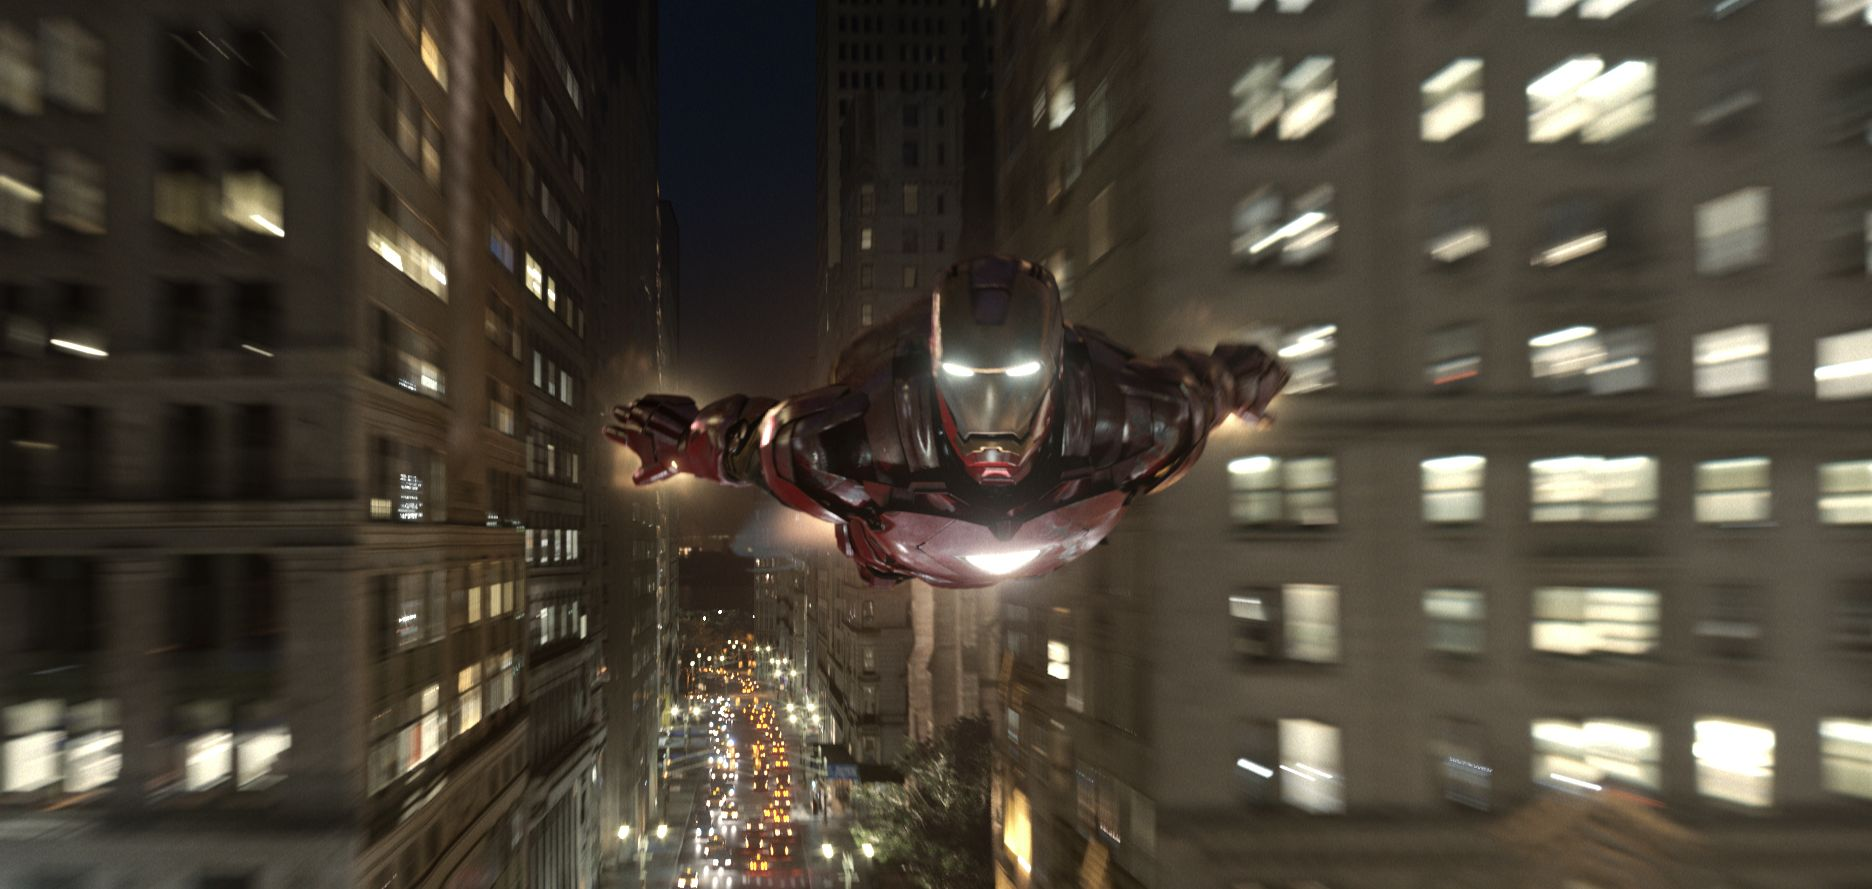 Iron Man flies through the city in The Avengers